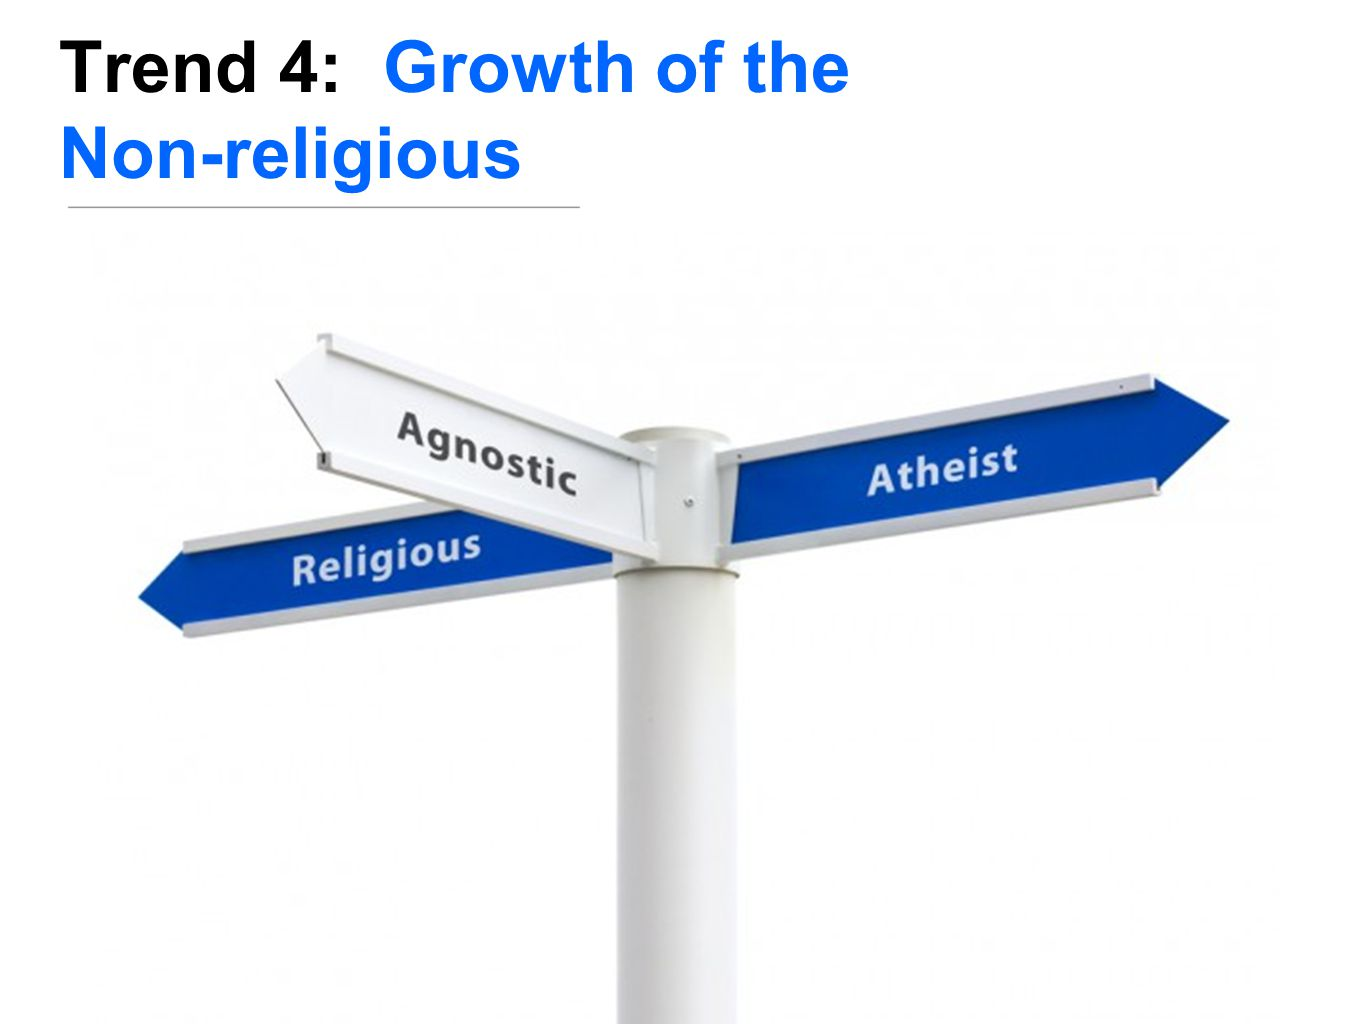 Trend 4: Growth of the Non-religious